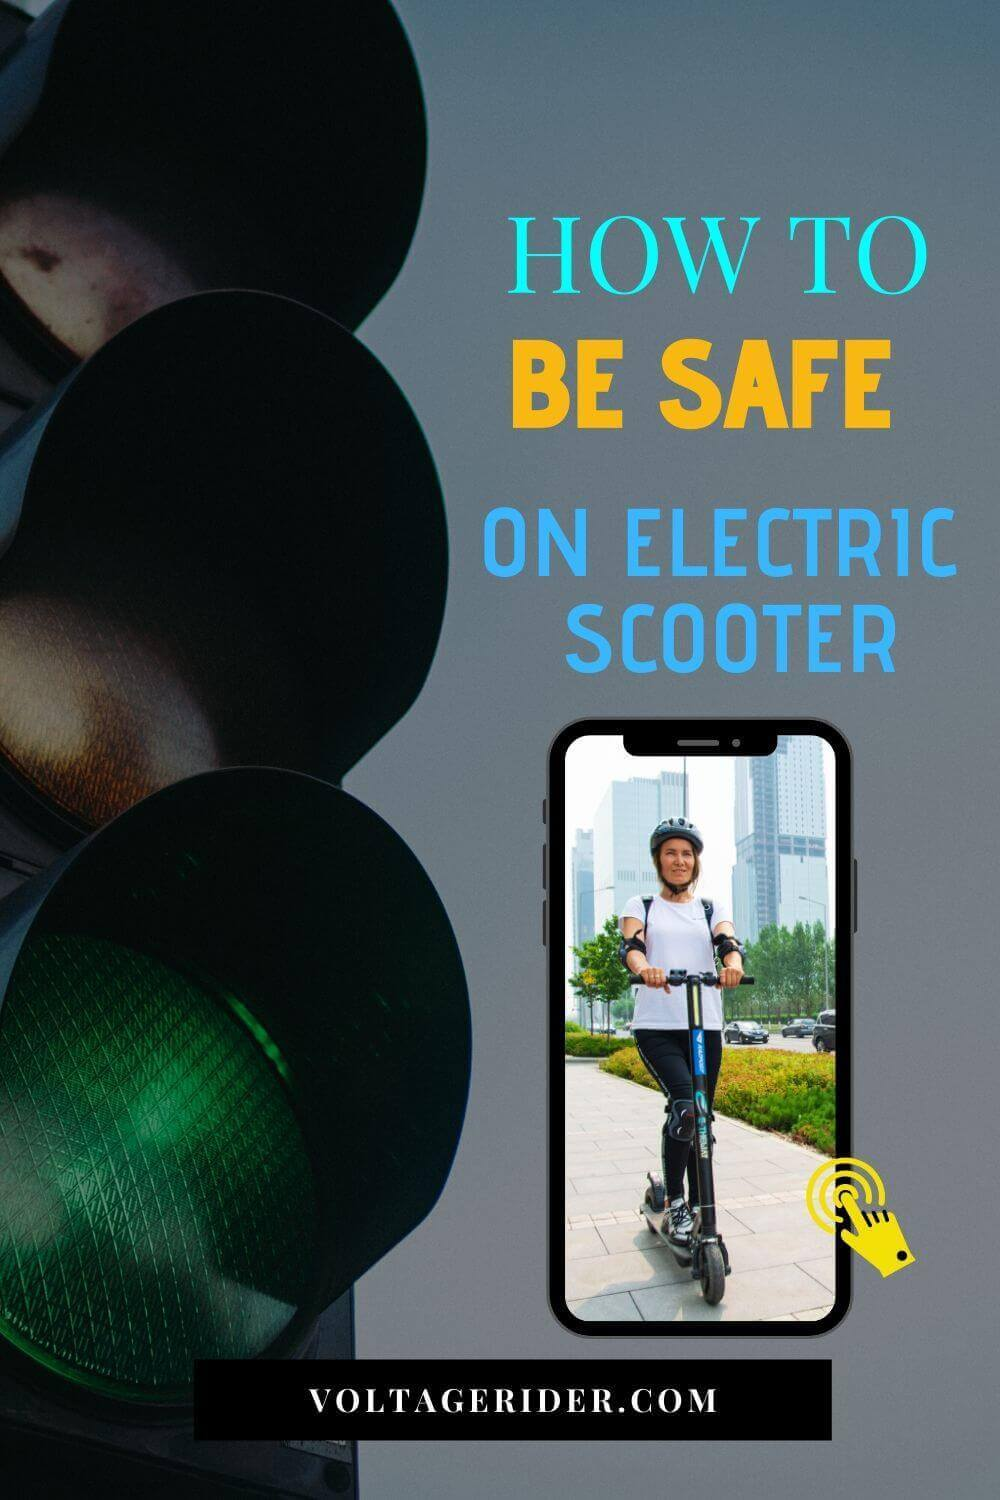 Pin about how to be safe on electric scooter from Voltage Rider pinterest account